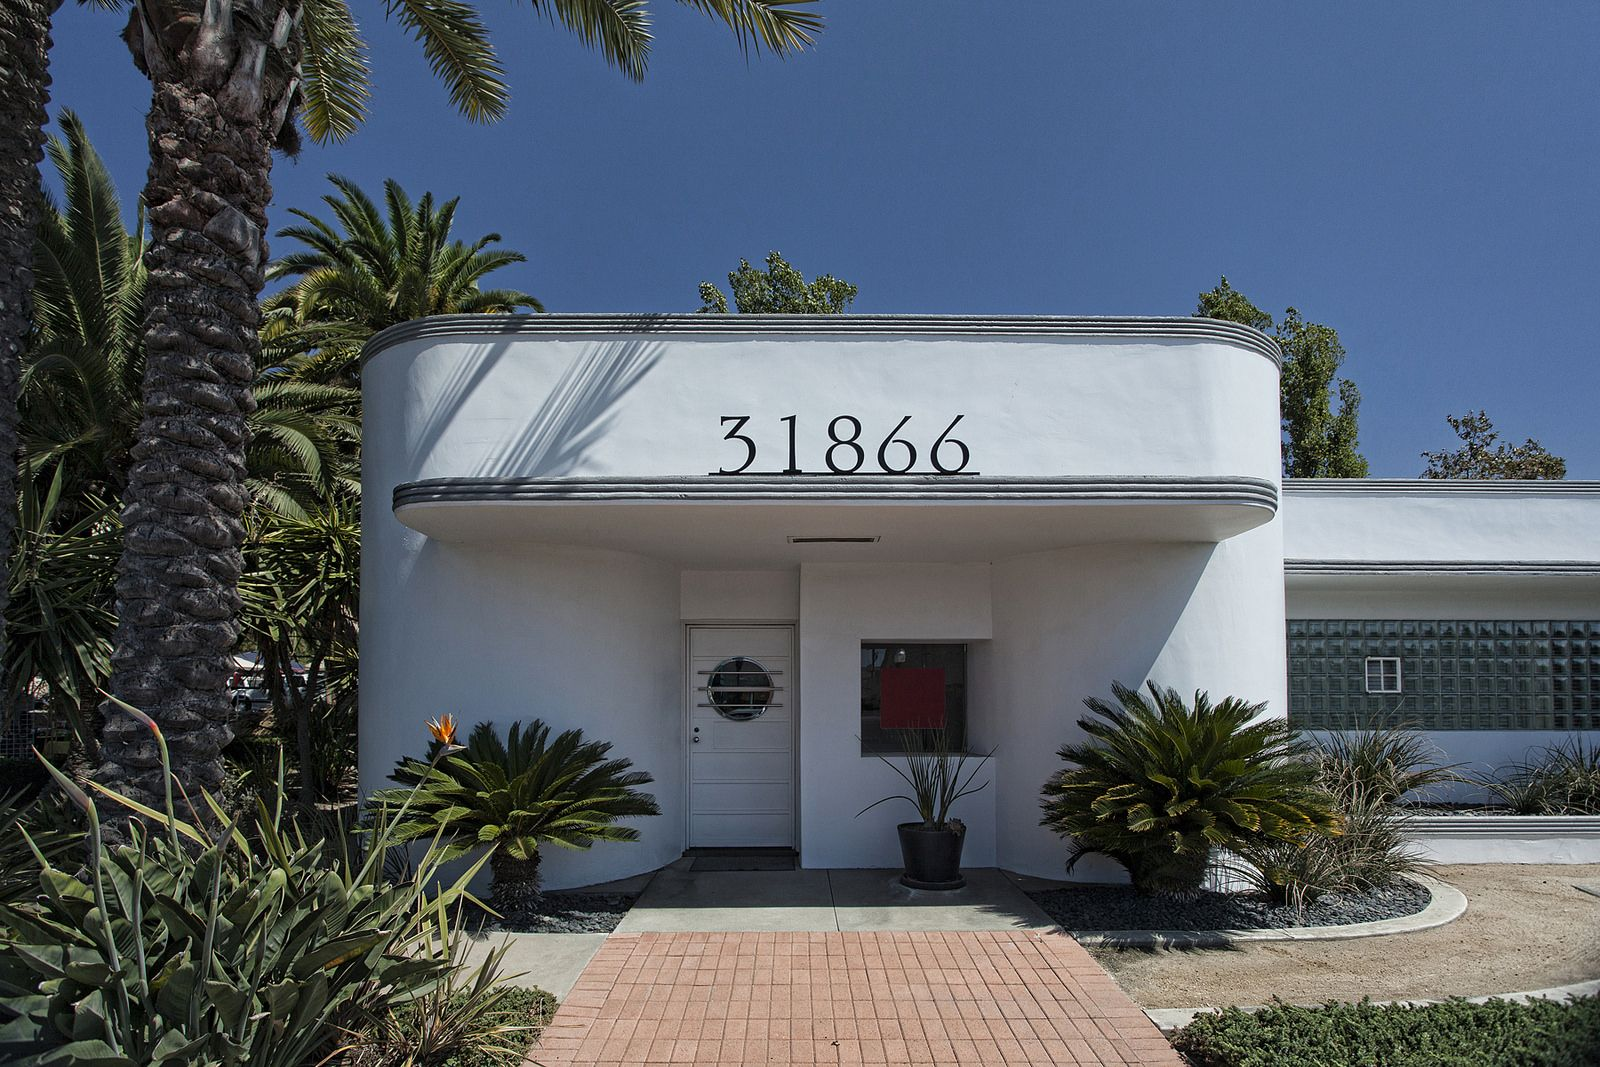 Mg art deco streamline moderne architecture building